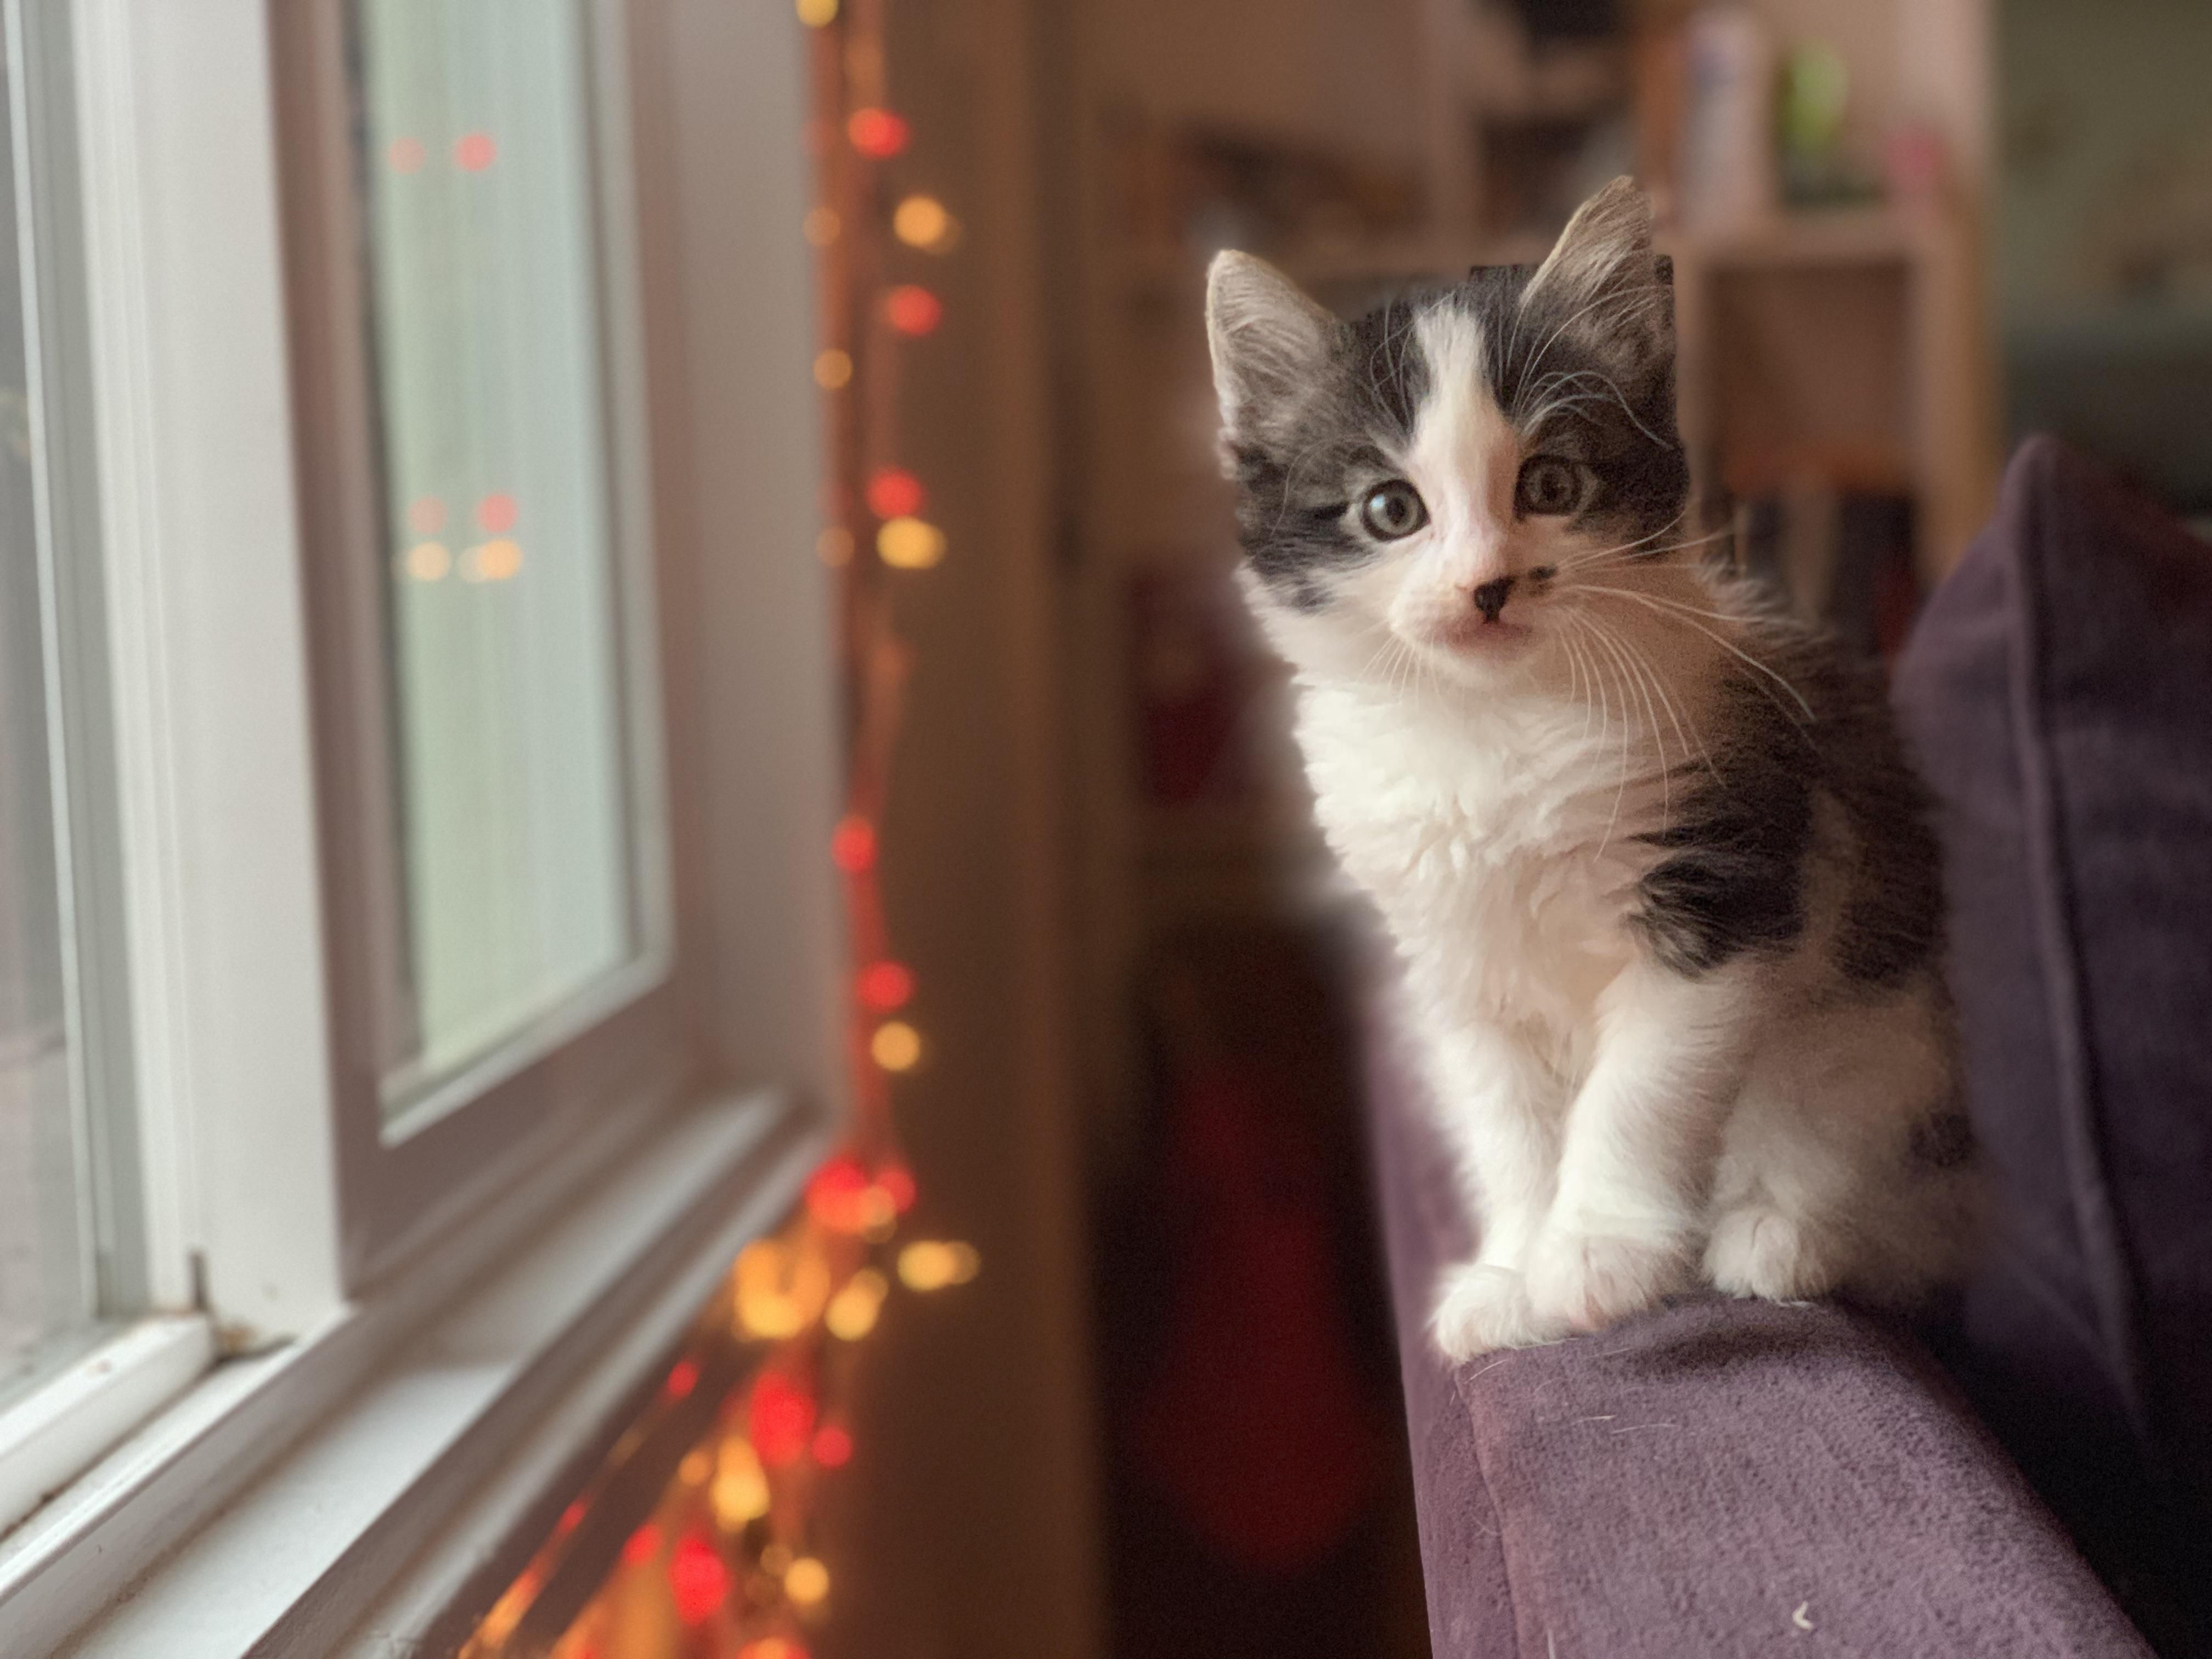 New Kitten Not Eating What Do I Do Hello There Bright People Are You Catlover Or Have You Any Pretty Cats I Think Cats Cat Having Kittens Cat Lovers